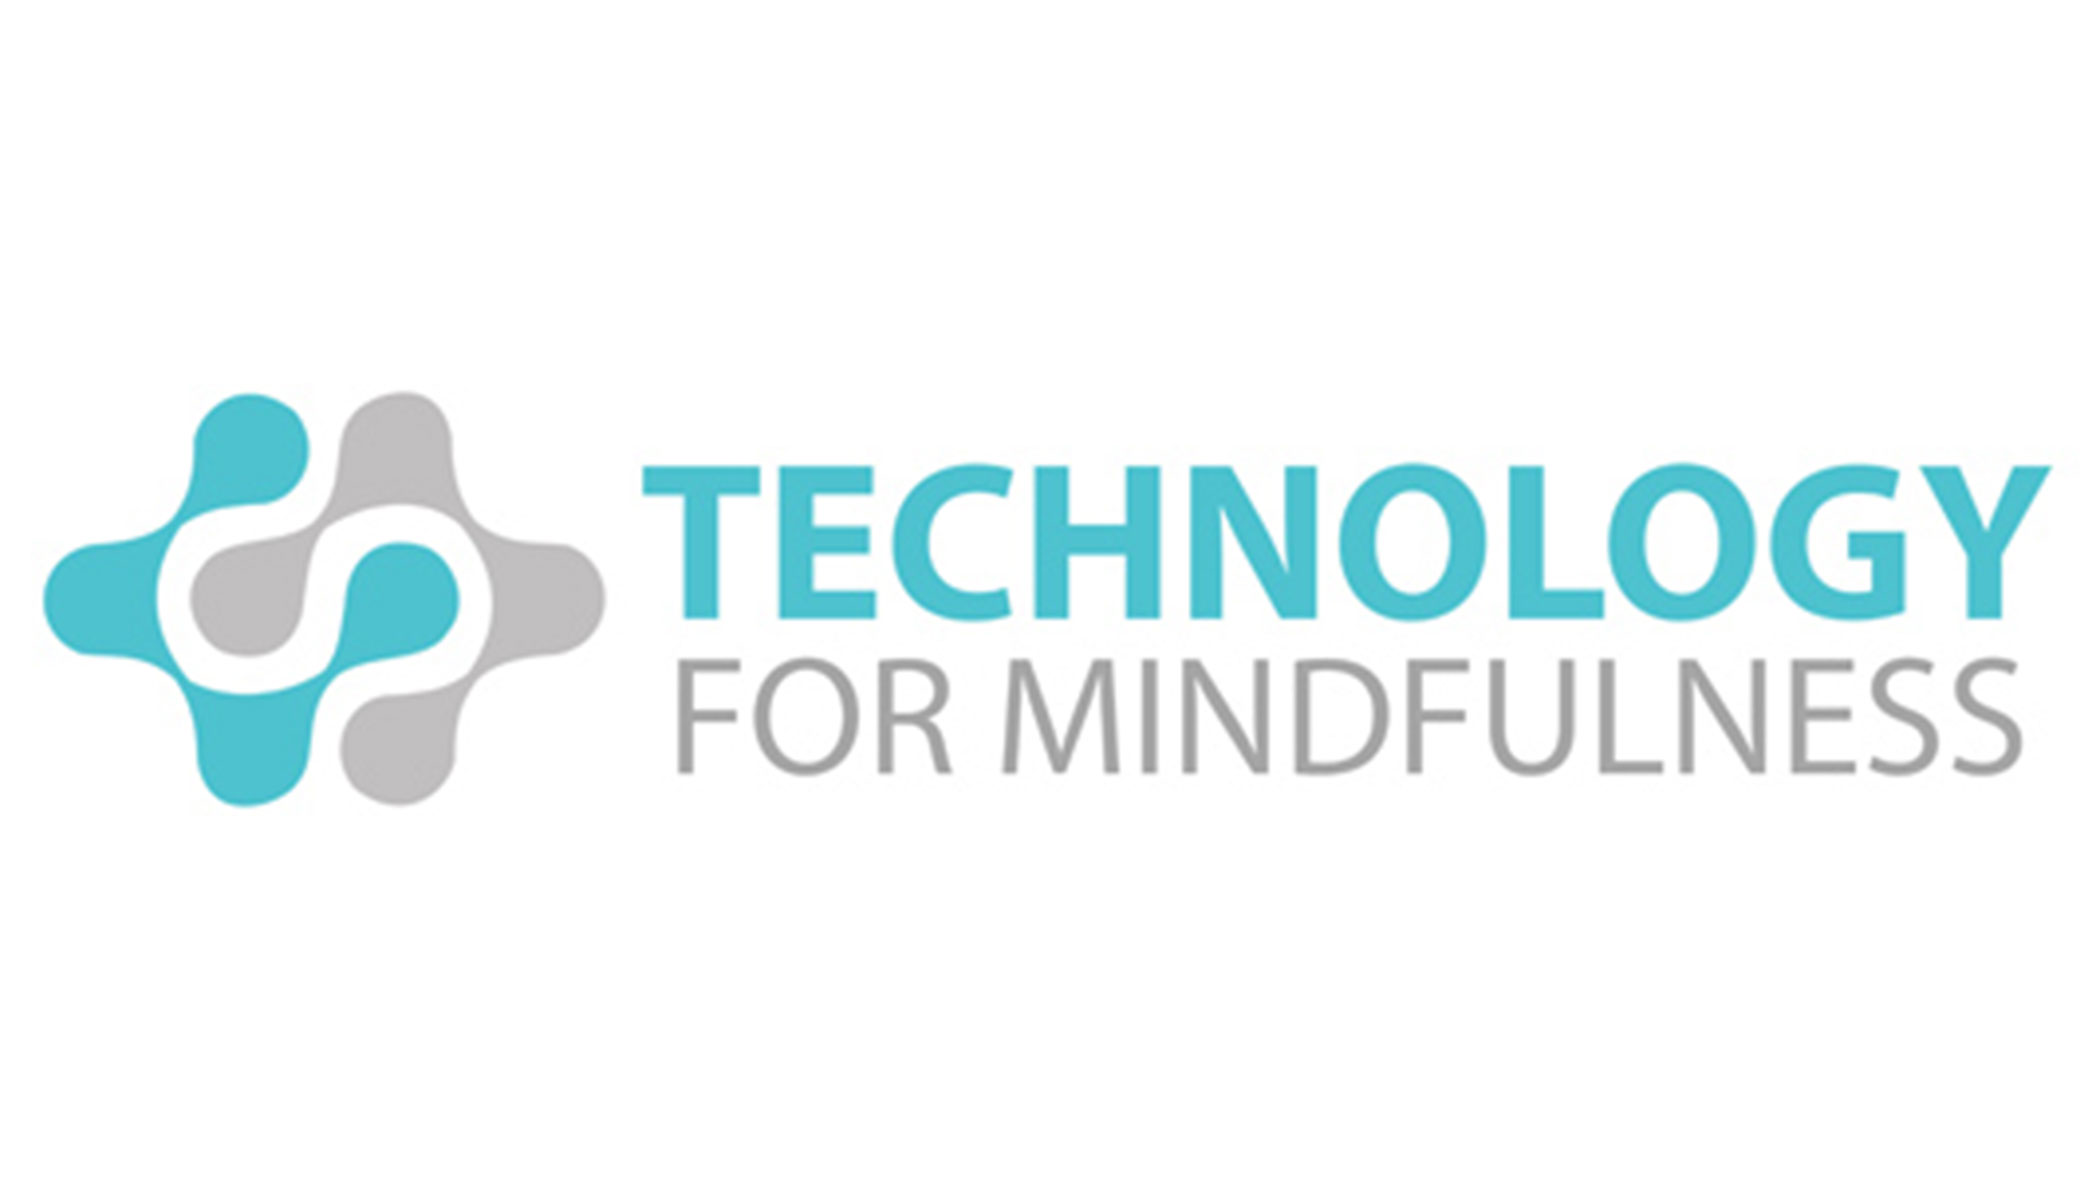 tech-for-mindfulness.jpg